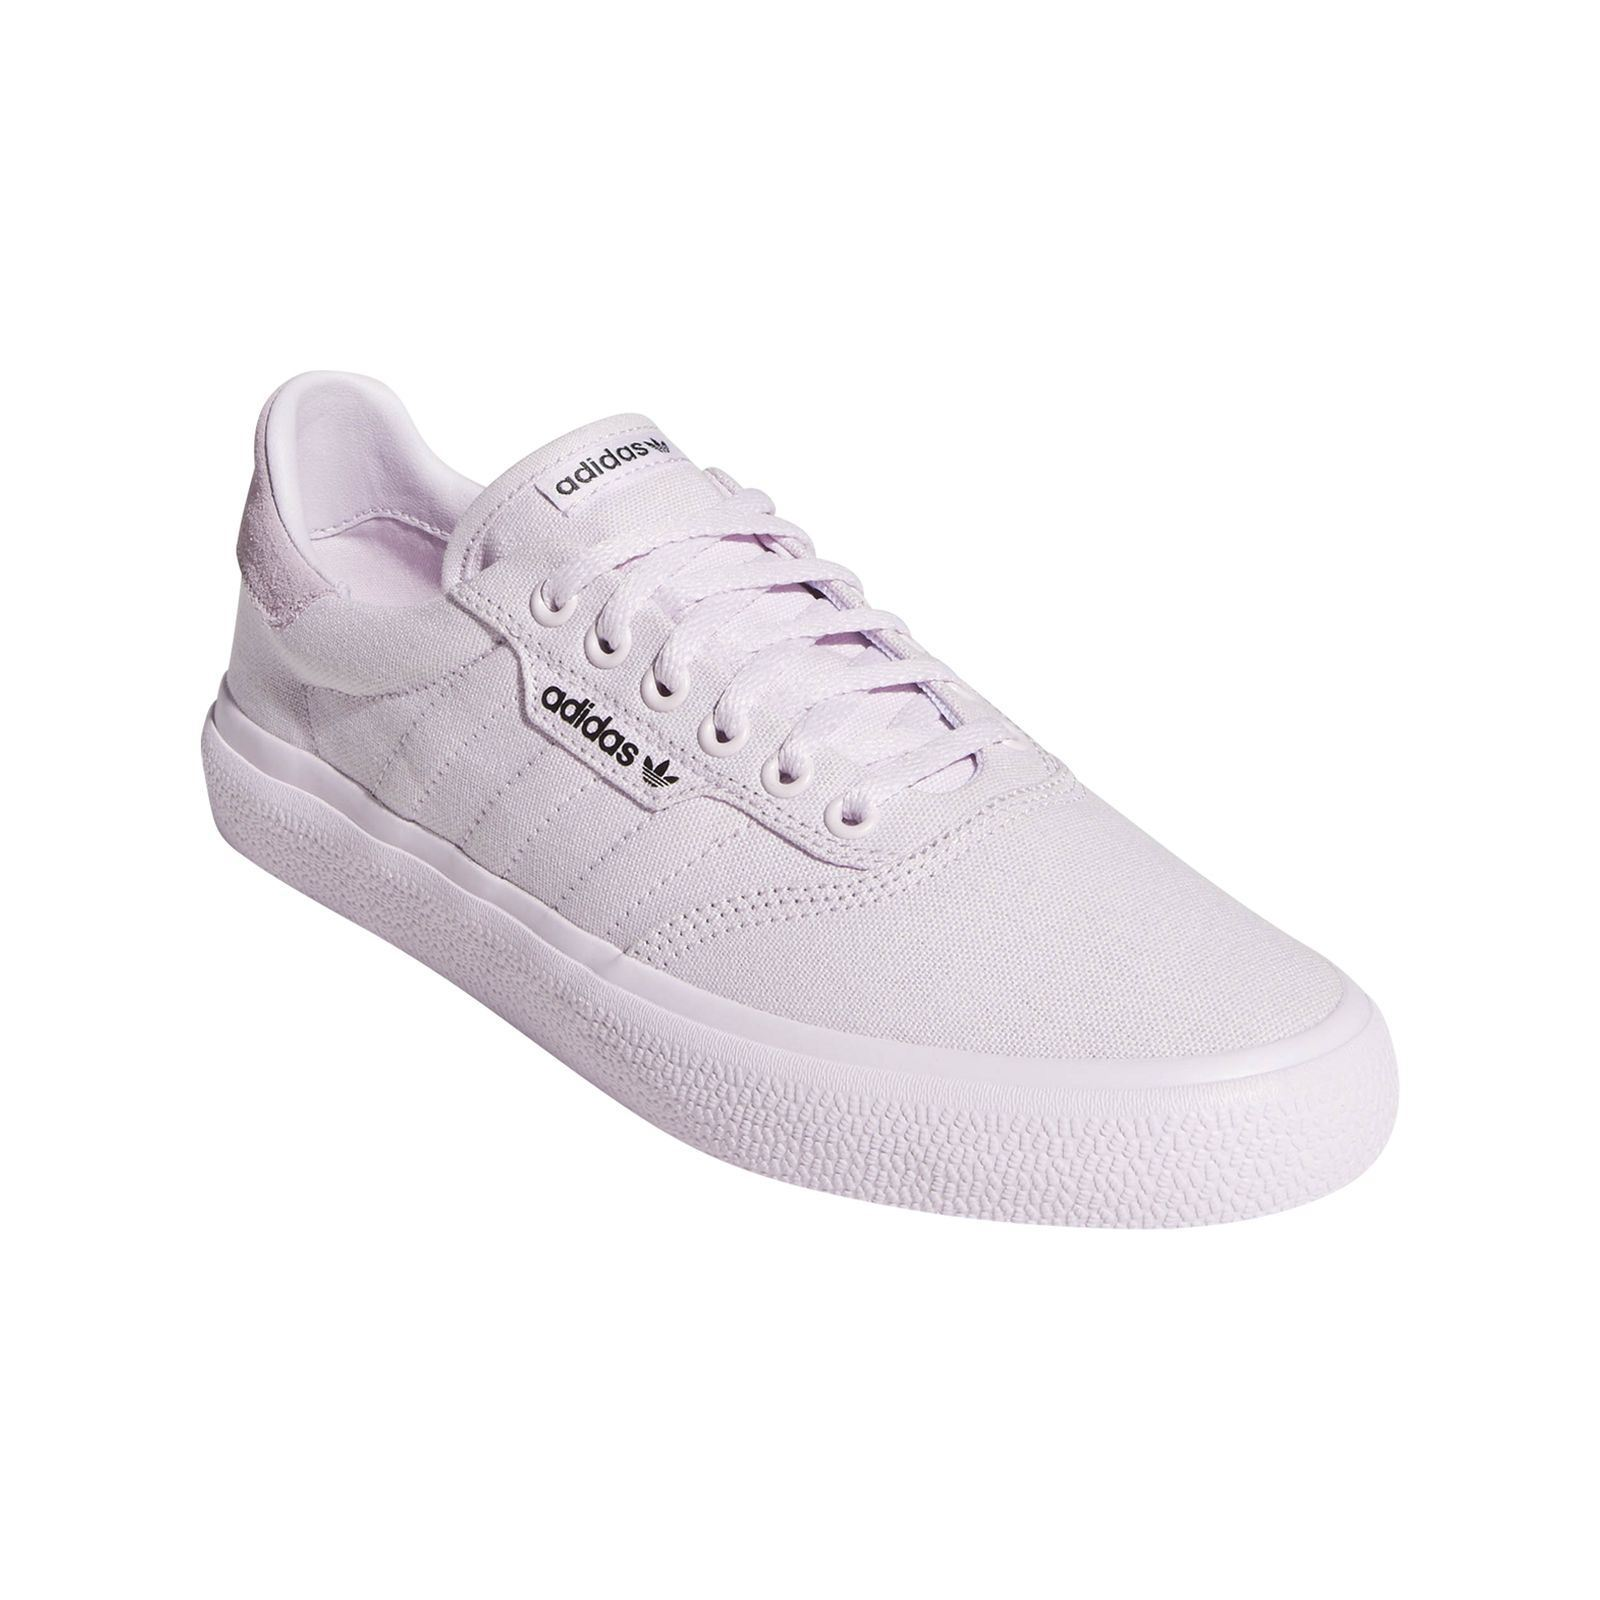 32fe49947850a adidas Originals Baskets en cuir bi-matière - rose   BrandAlley